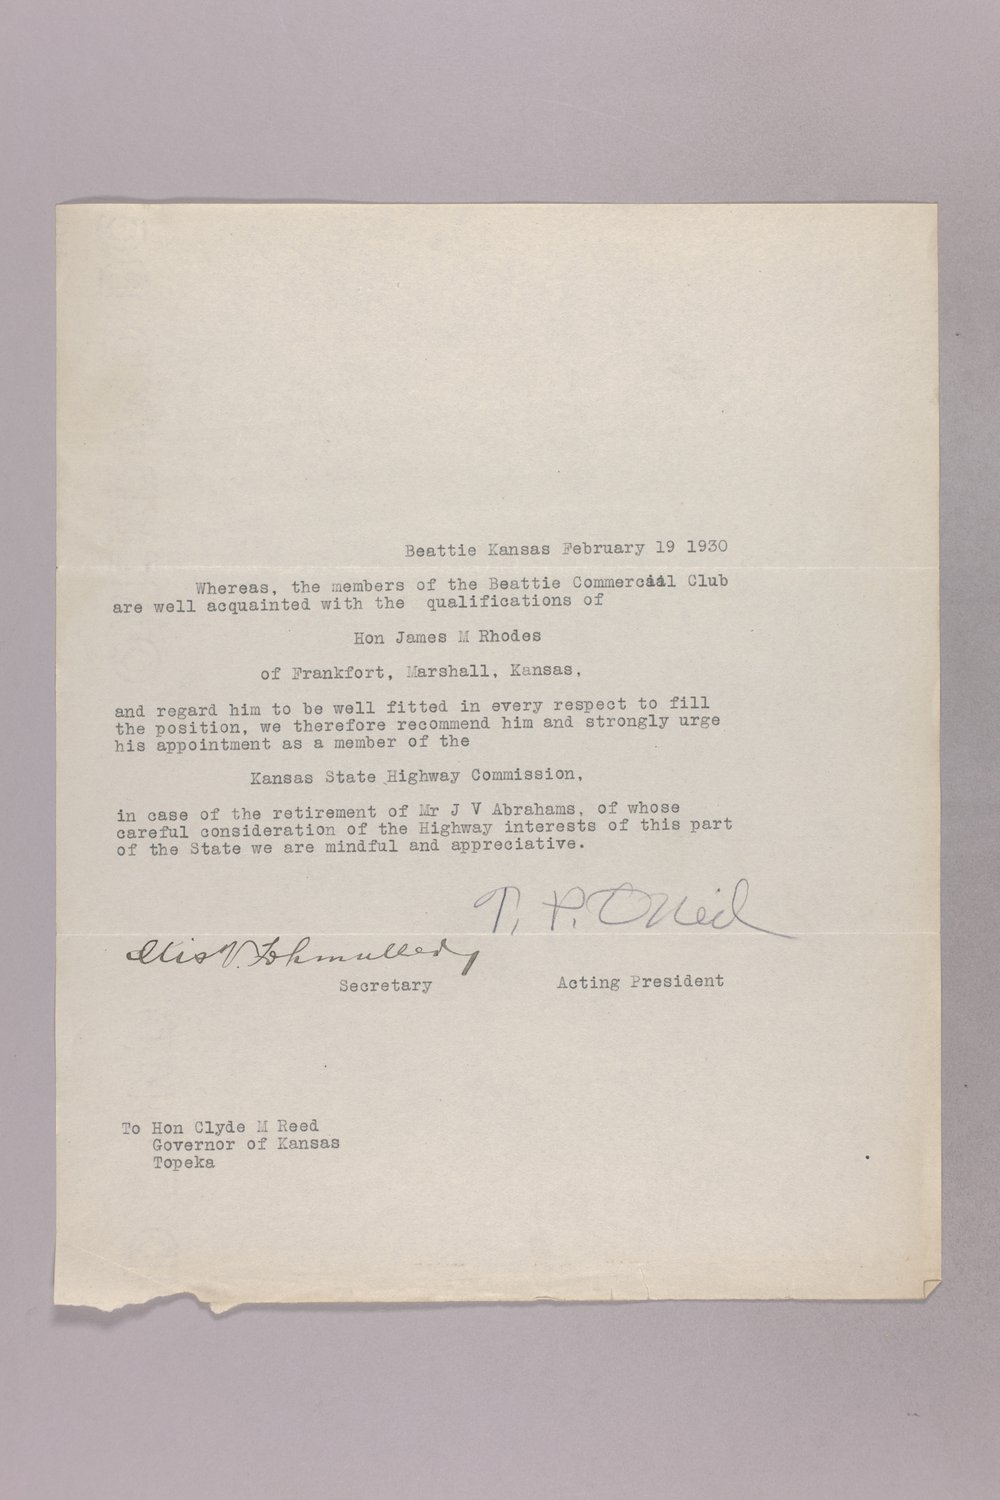 Governor Clyde M. Reed correspondence, commission appointments - 7